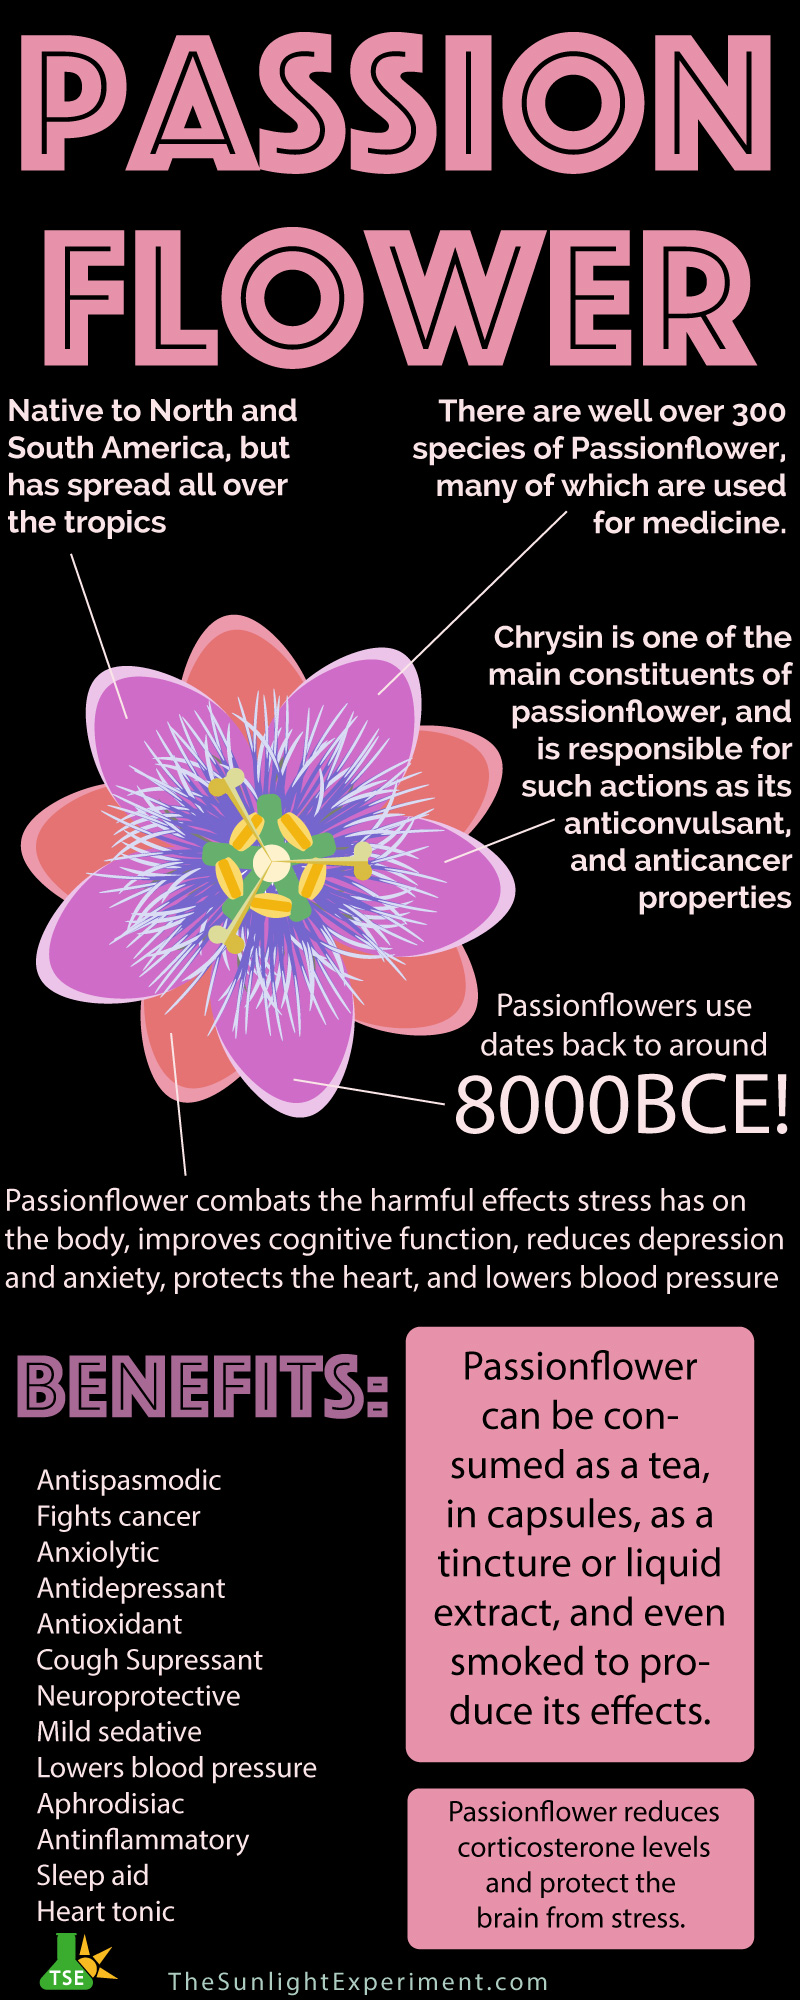 Passionflower a calming influence